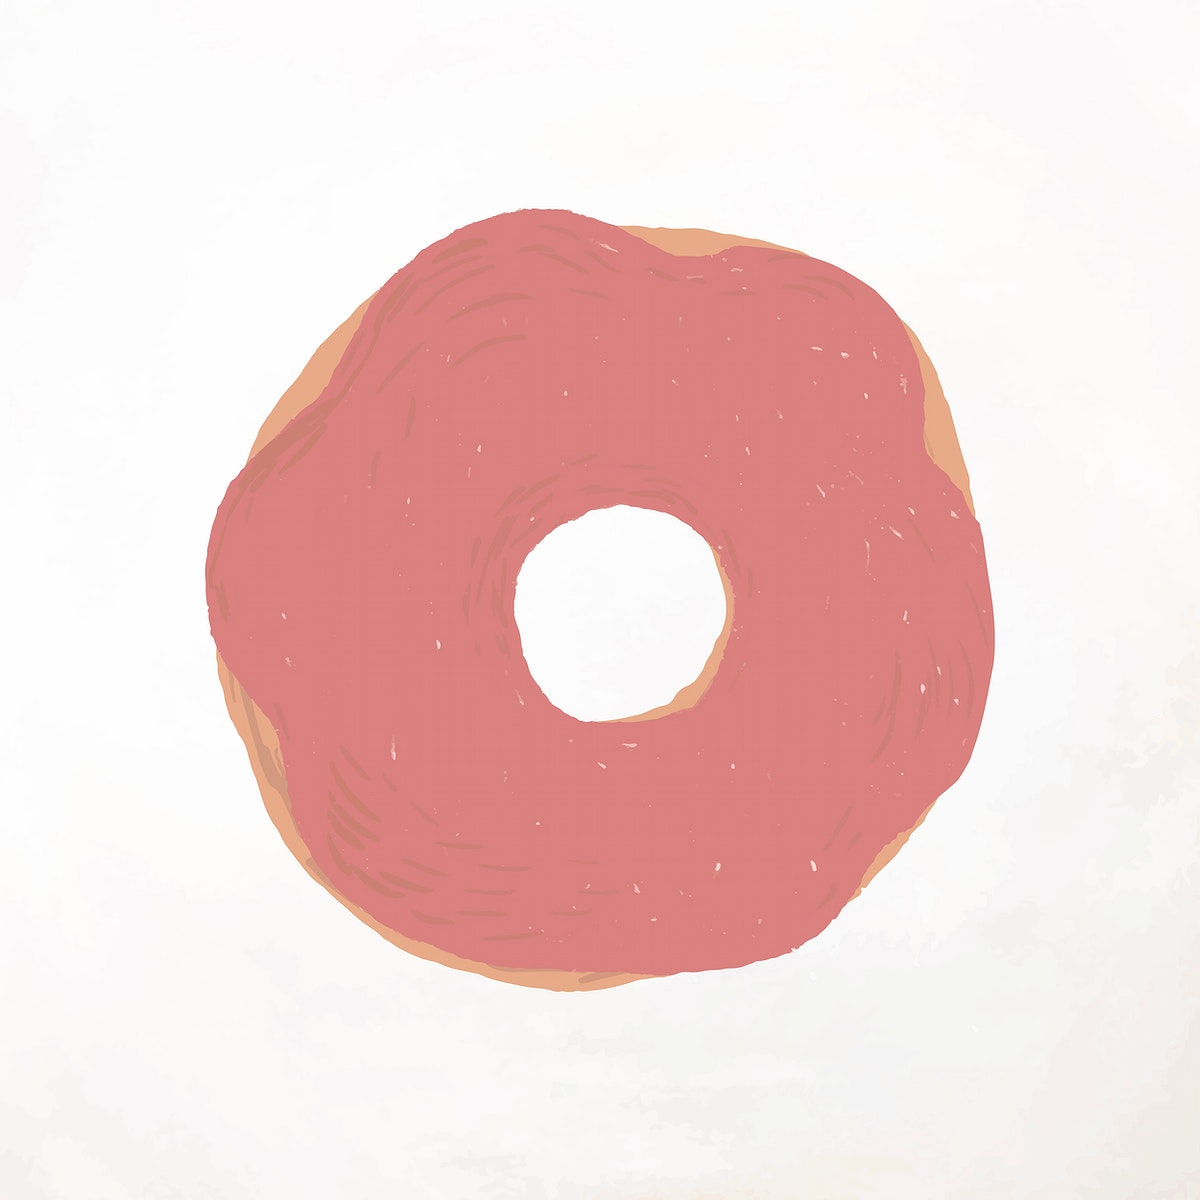 Strawberry frosted donut element vector cute hand drawn style